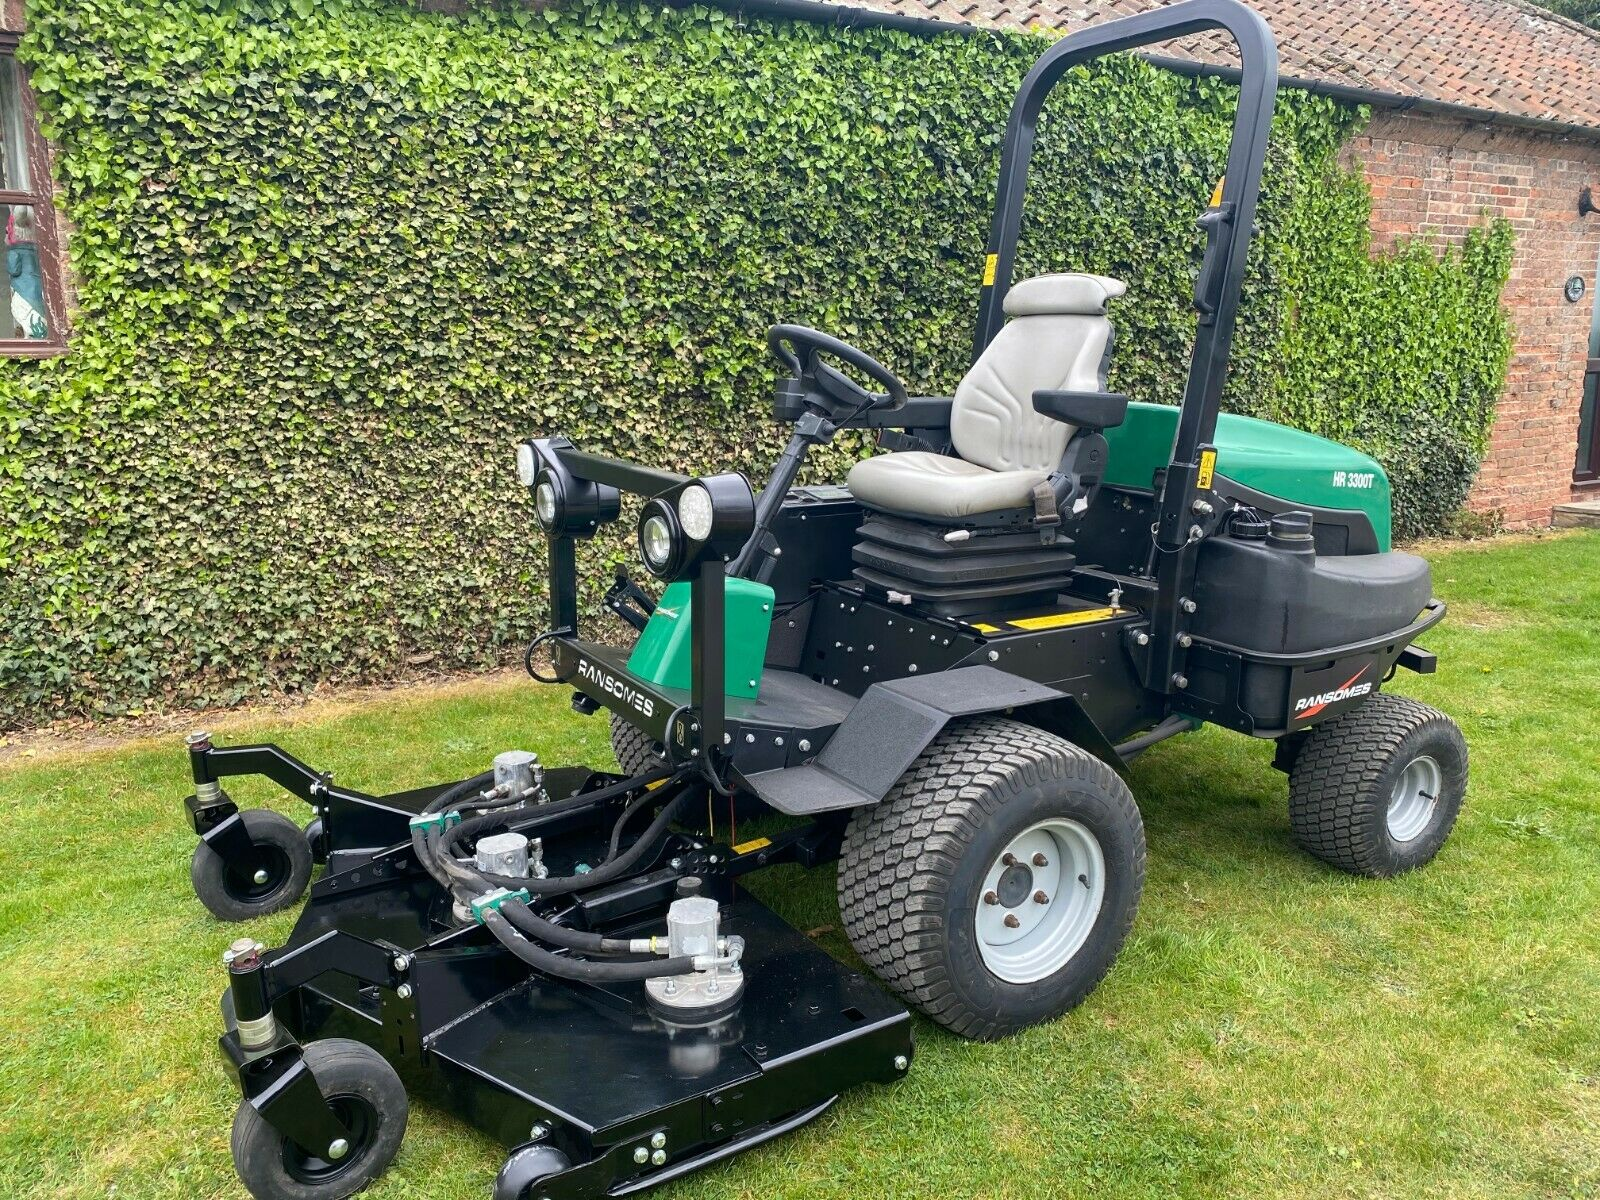 """RANSOMES HR3300T UPFRONT ROTARY, 60"""" CUT, 4x4, DIESEL, YEAR 2014, RIDE ON MOWER *PLUS VAT* - Image 2 of 10"""